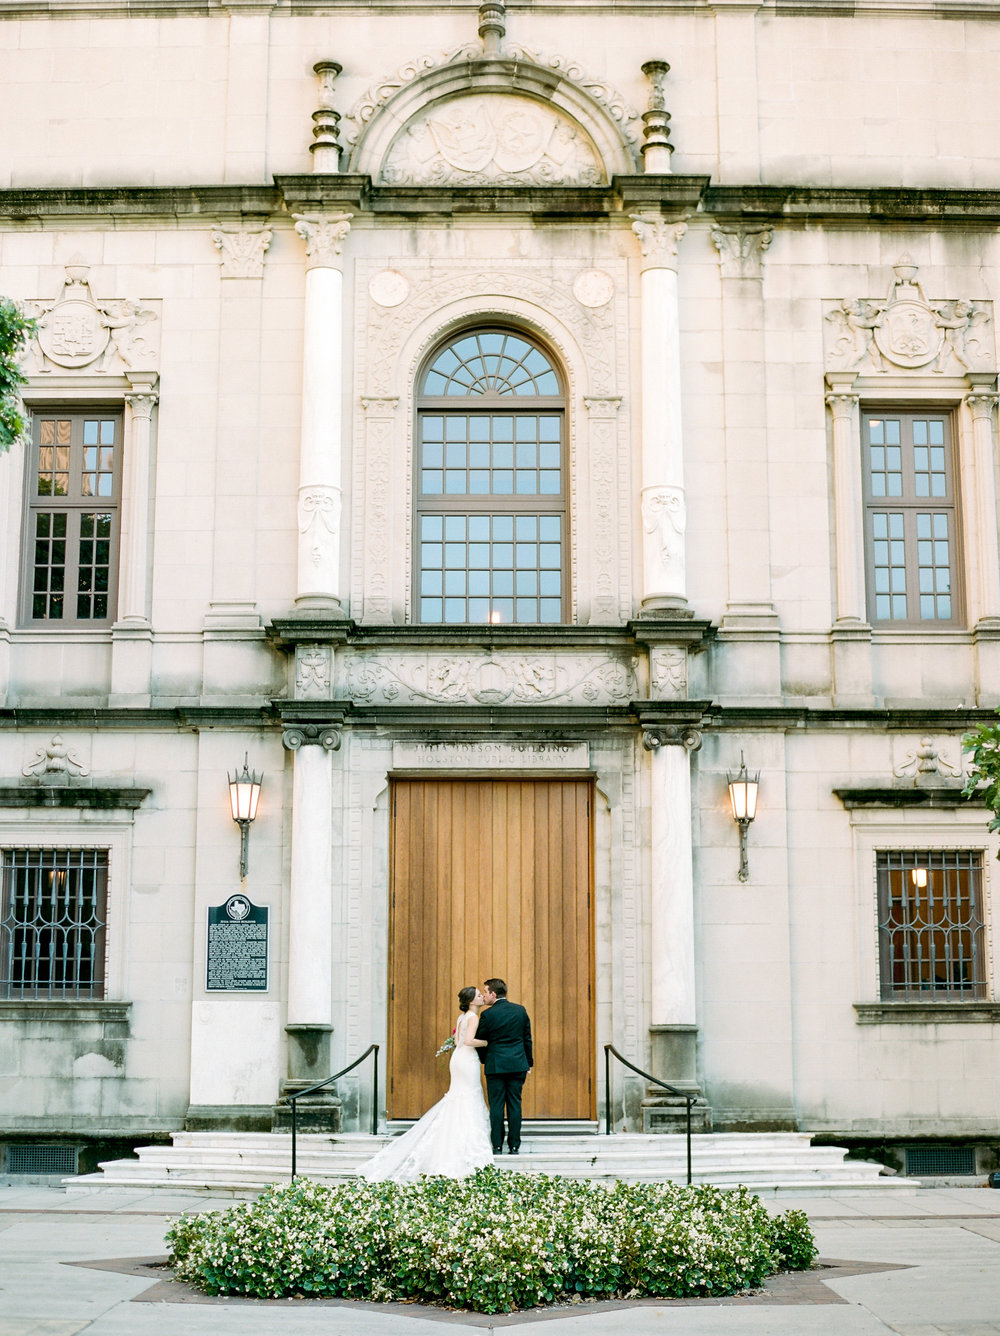 The-Knot-Texas-Fine-Art-Wedding-Film-Destination-Photographer-Houston-Austin-Dallas-New-Orleans-Julia-Ideson-Library-Event-Dana-Josh-Fernandez-Photograph-Top-Best-26.jpg